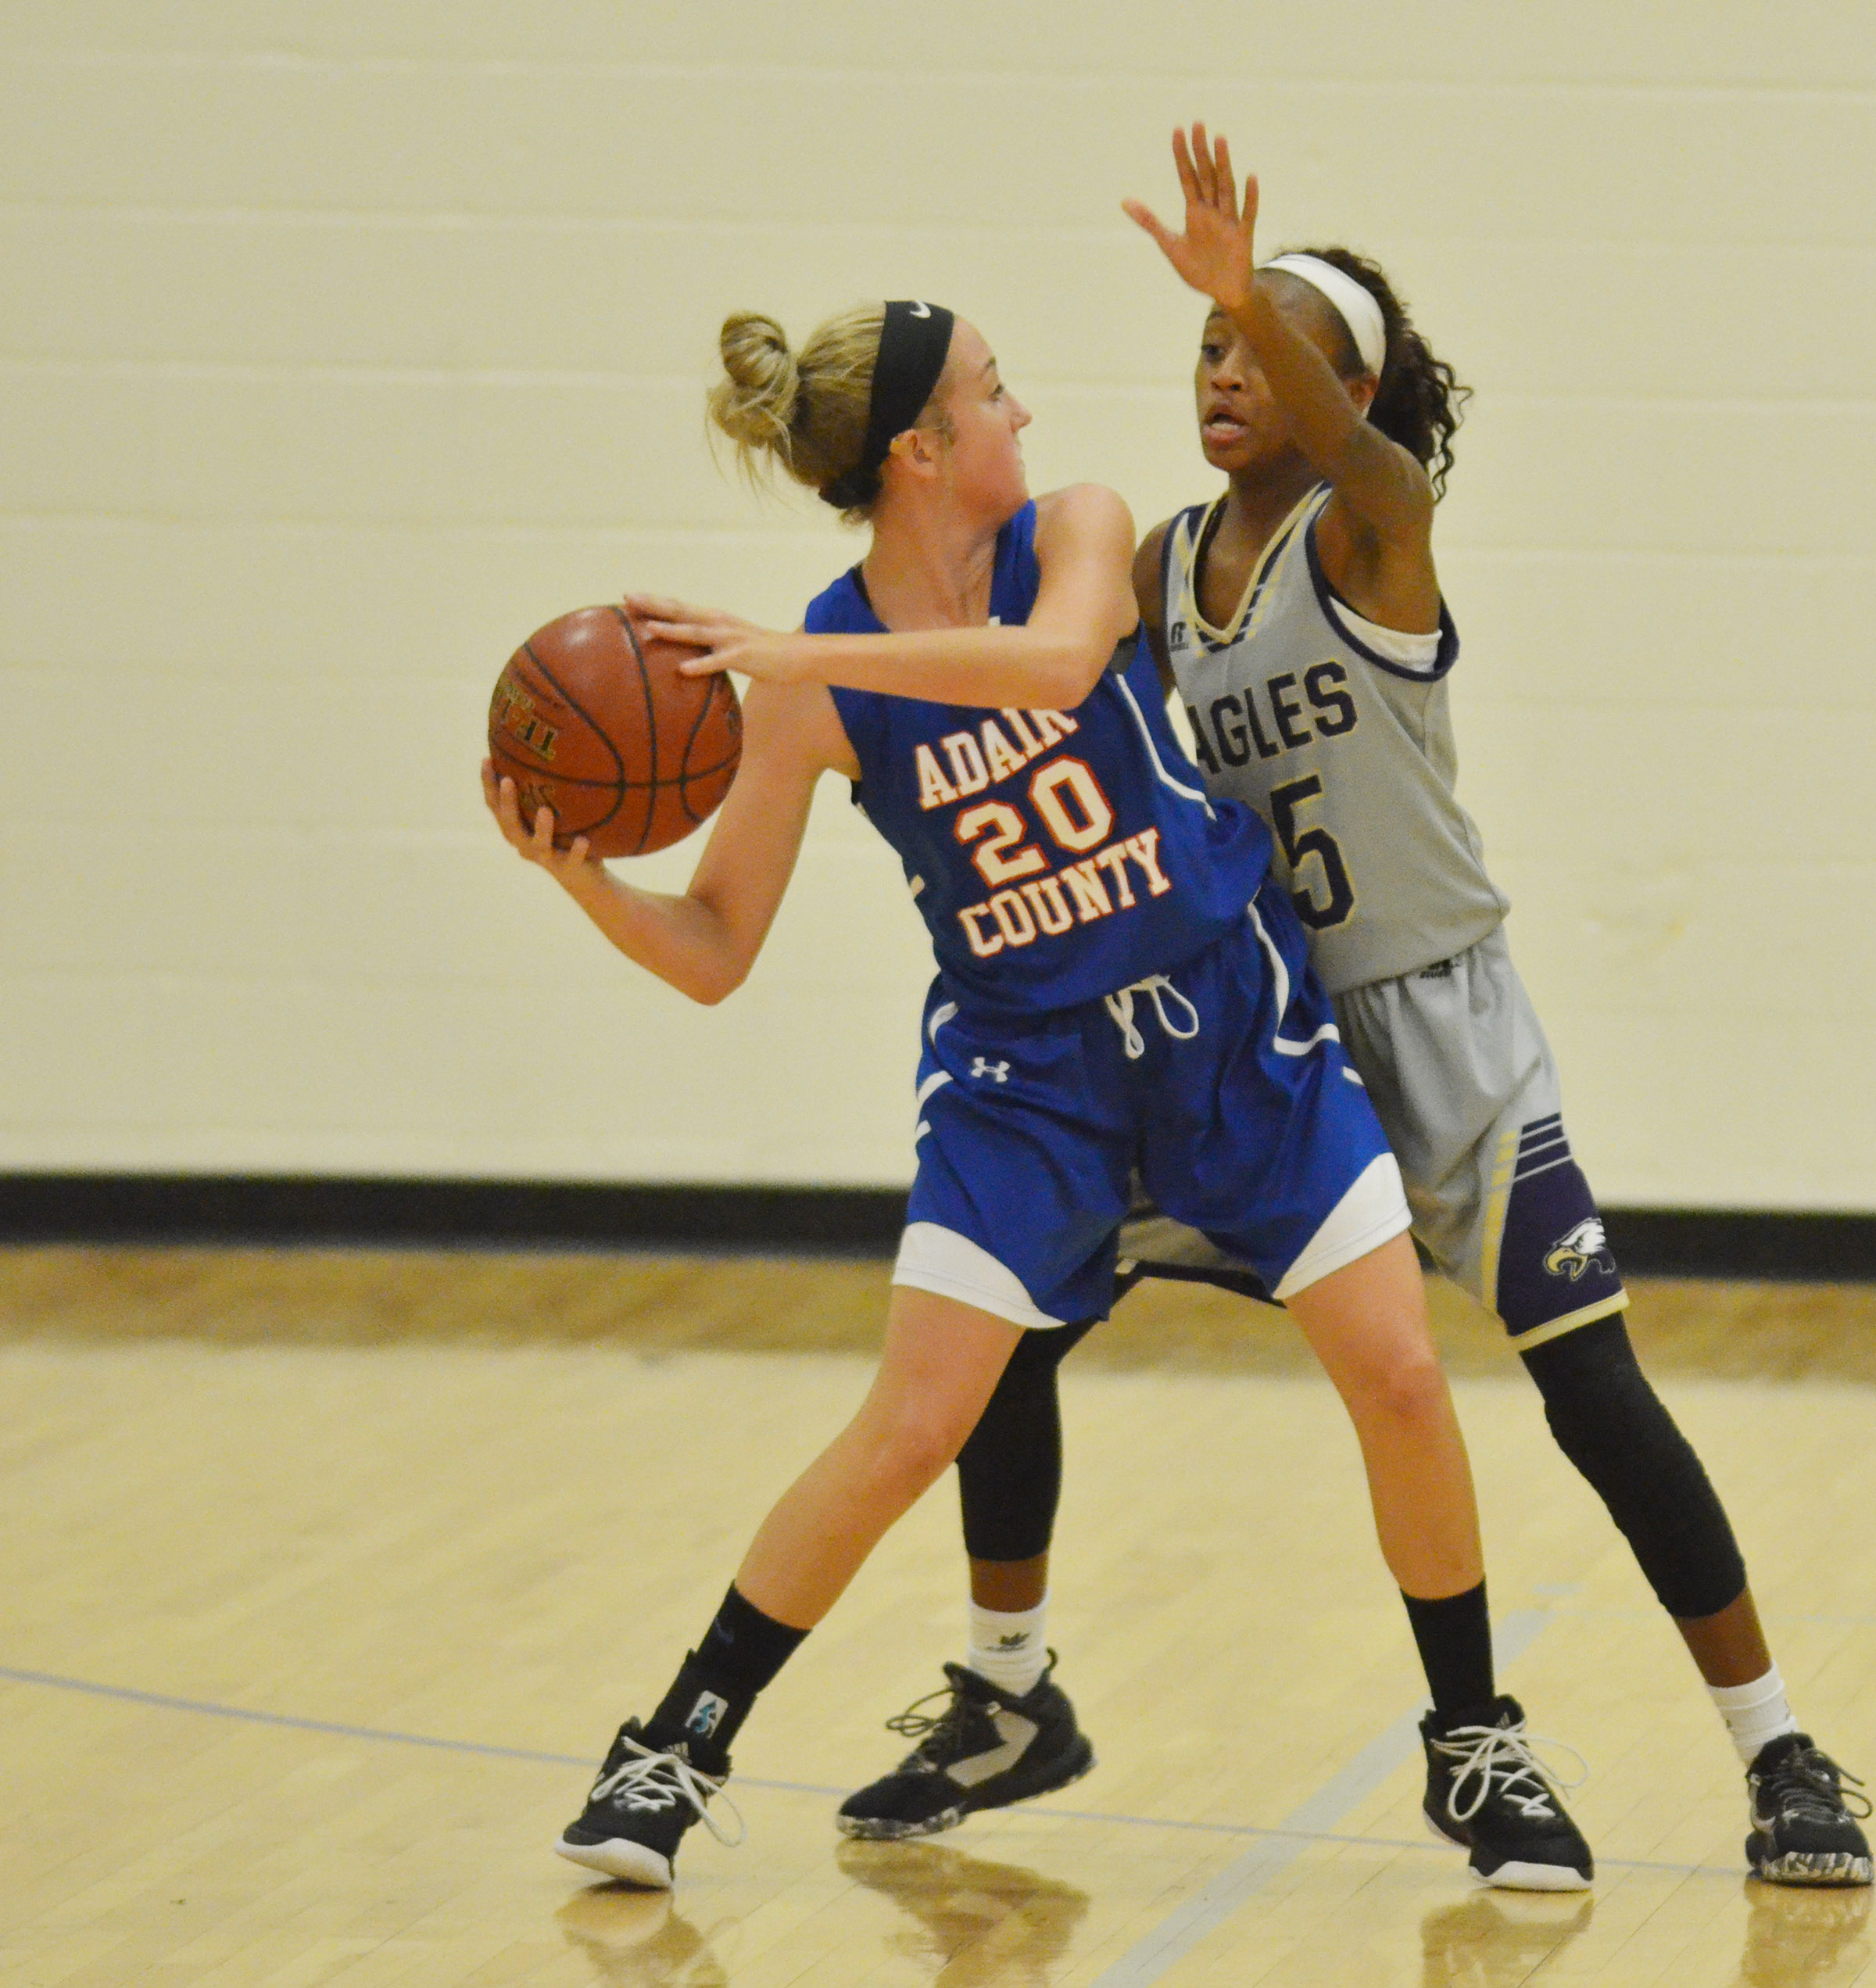 CMS eighth-graders Bri Gowdy plays defense.